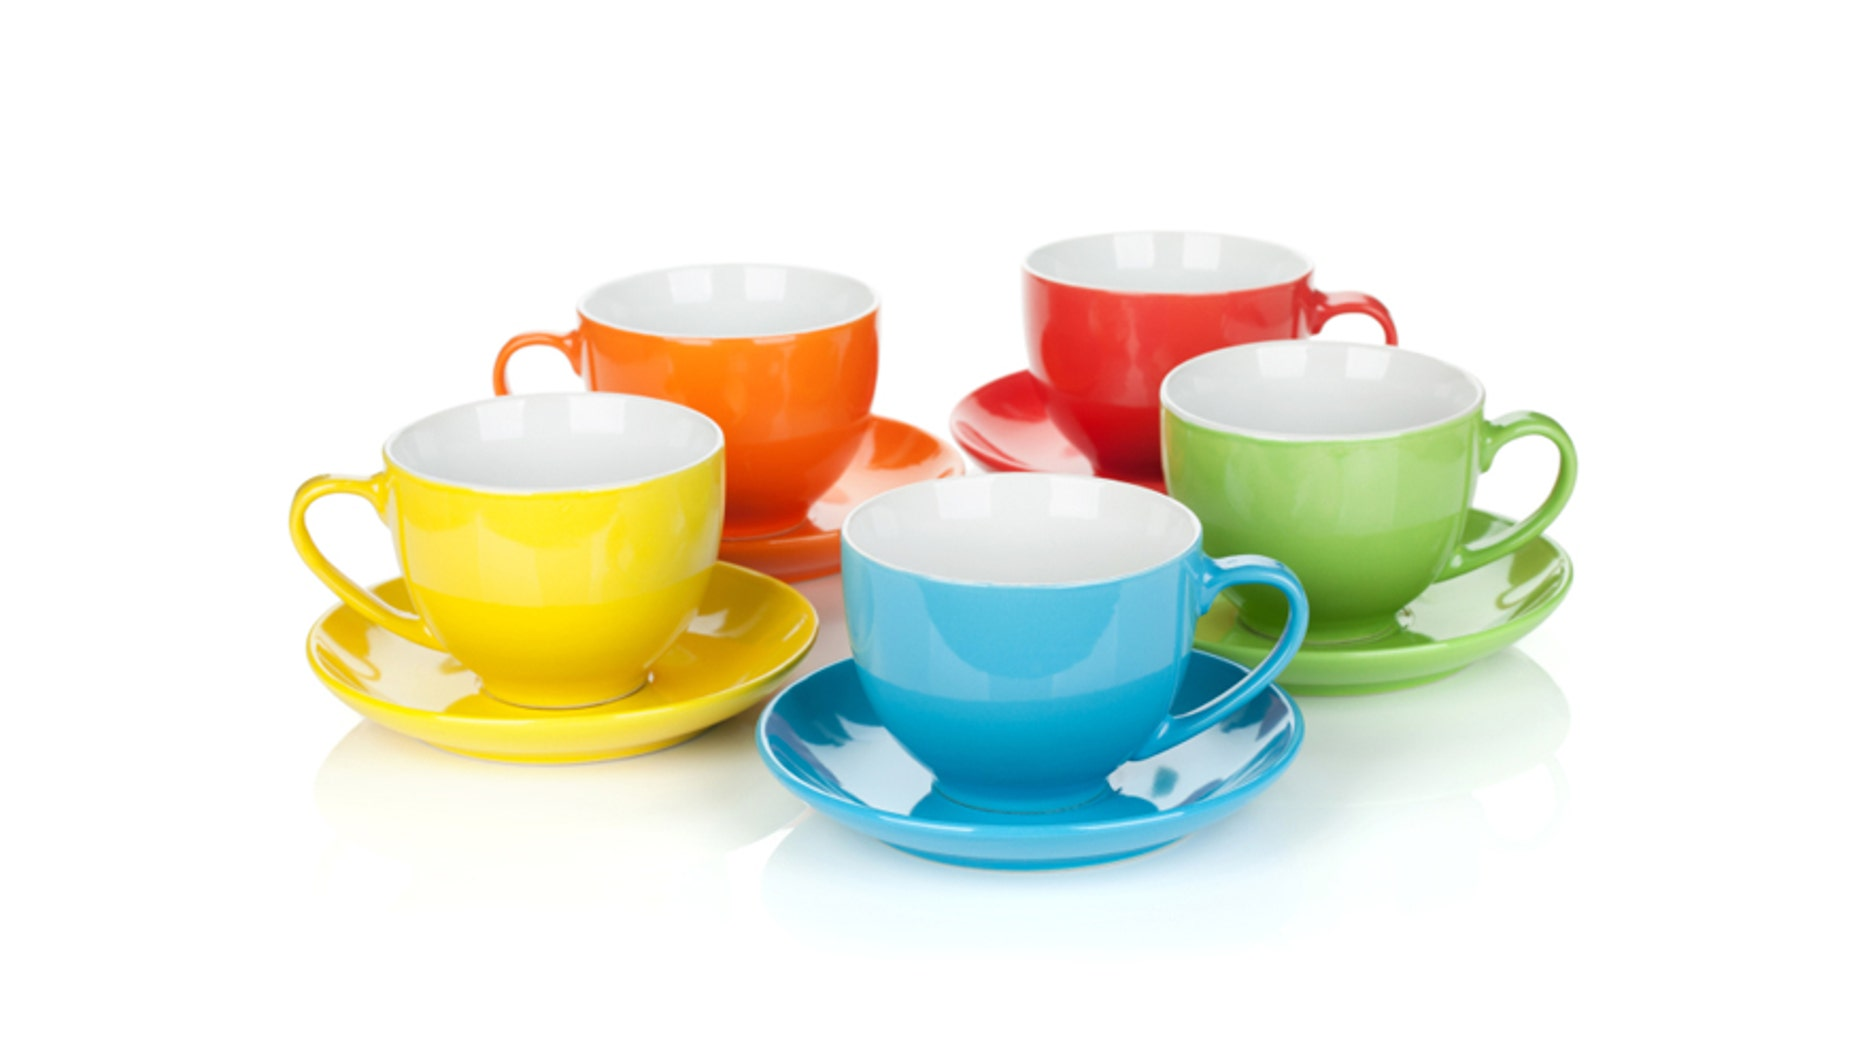 Set of colorful cups. Isolated on white background